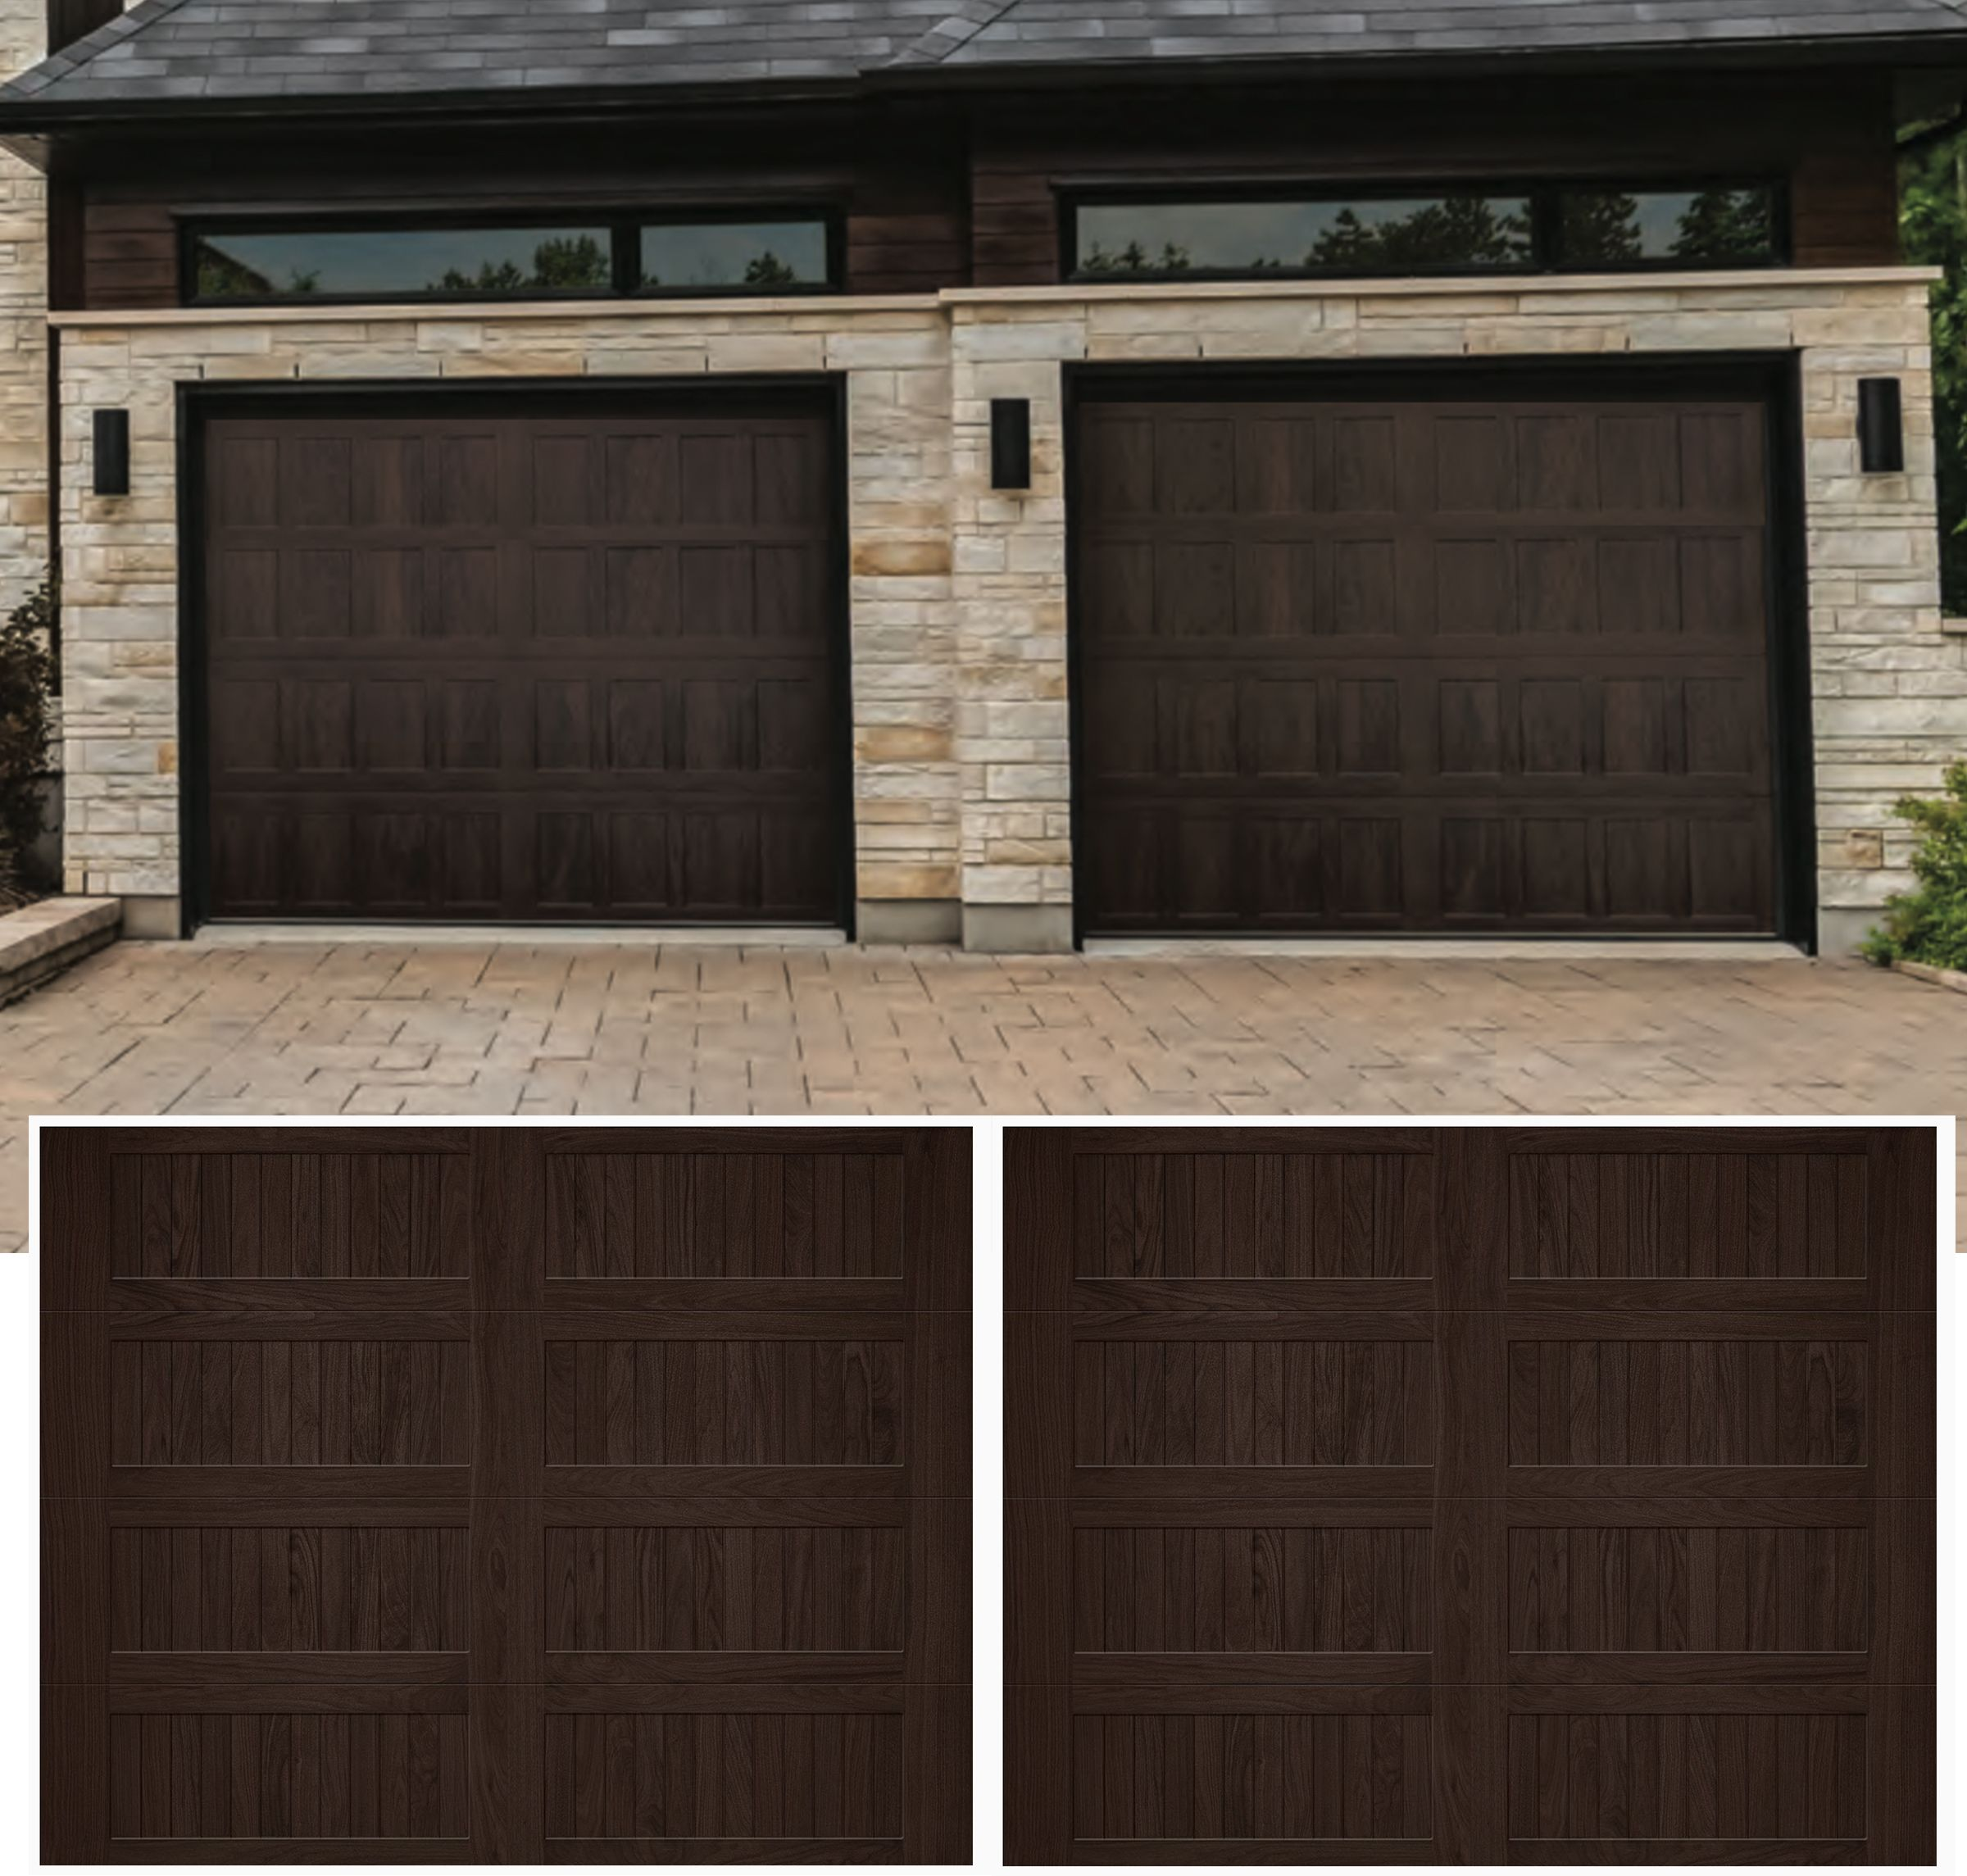 Chi Garage Door Accents Wood Tones Stamped Carriage House Long Bottom Web Sample Image Of Door S Garage Doors Chi Garage Doors Carriage House Garage Doors